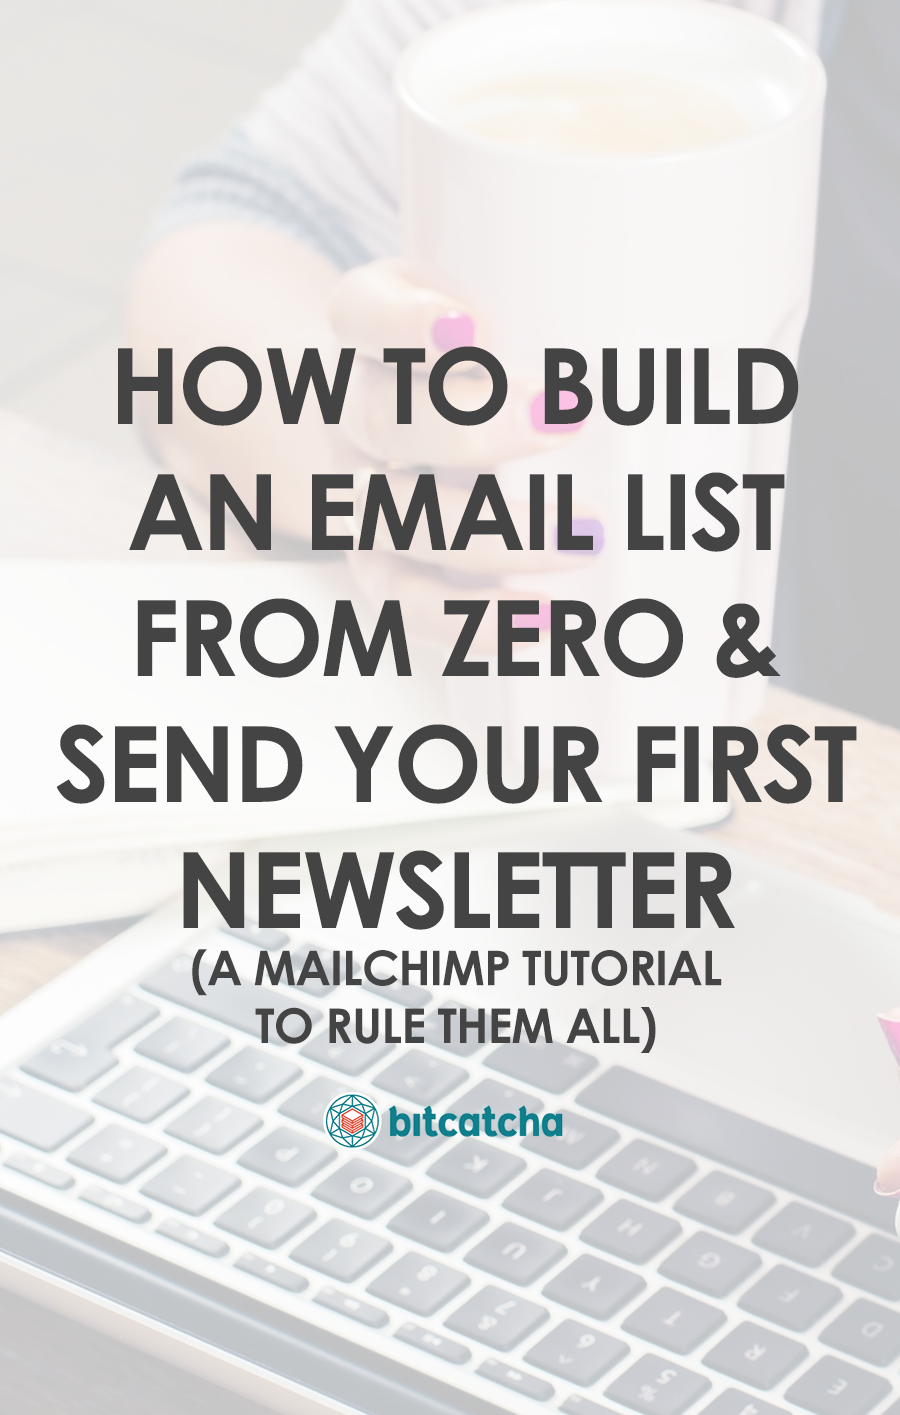 How to Build an Email List From Zero & Send Your First Newsletter: A MailChimp Tutorial To Rule Them All